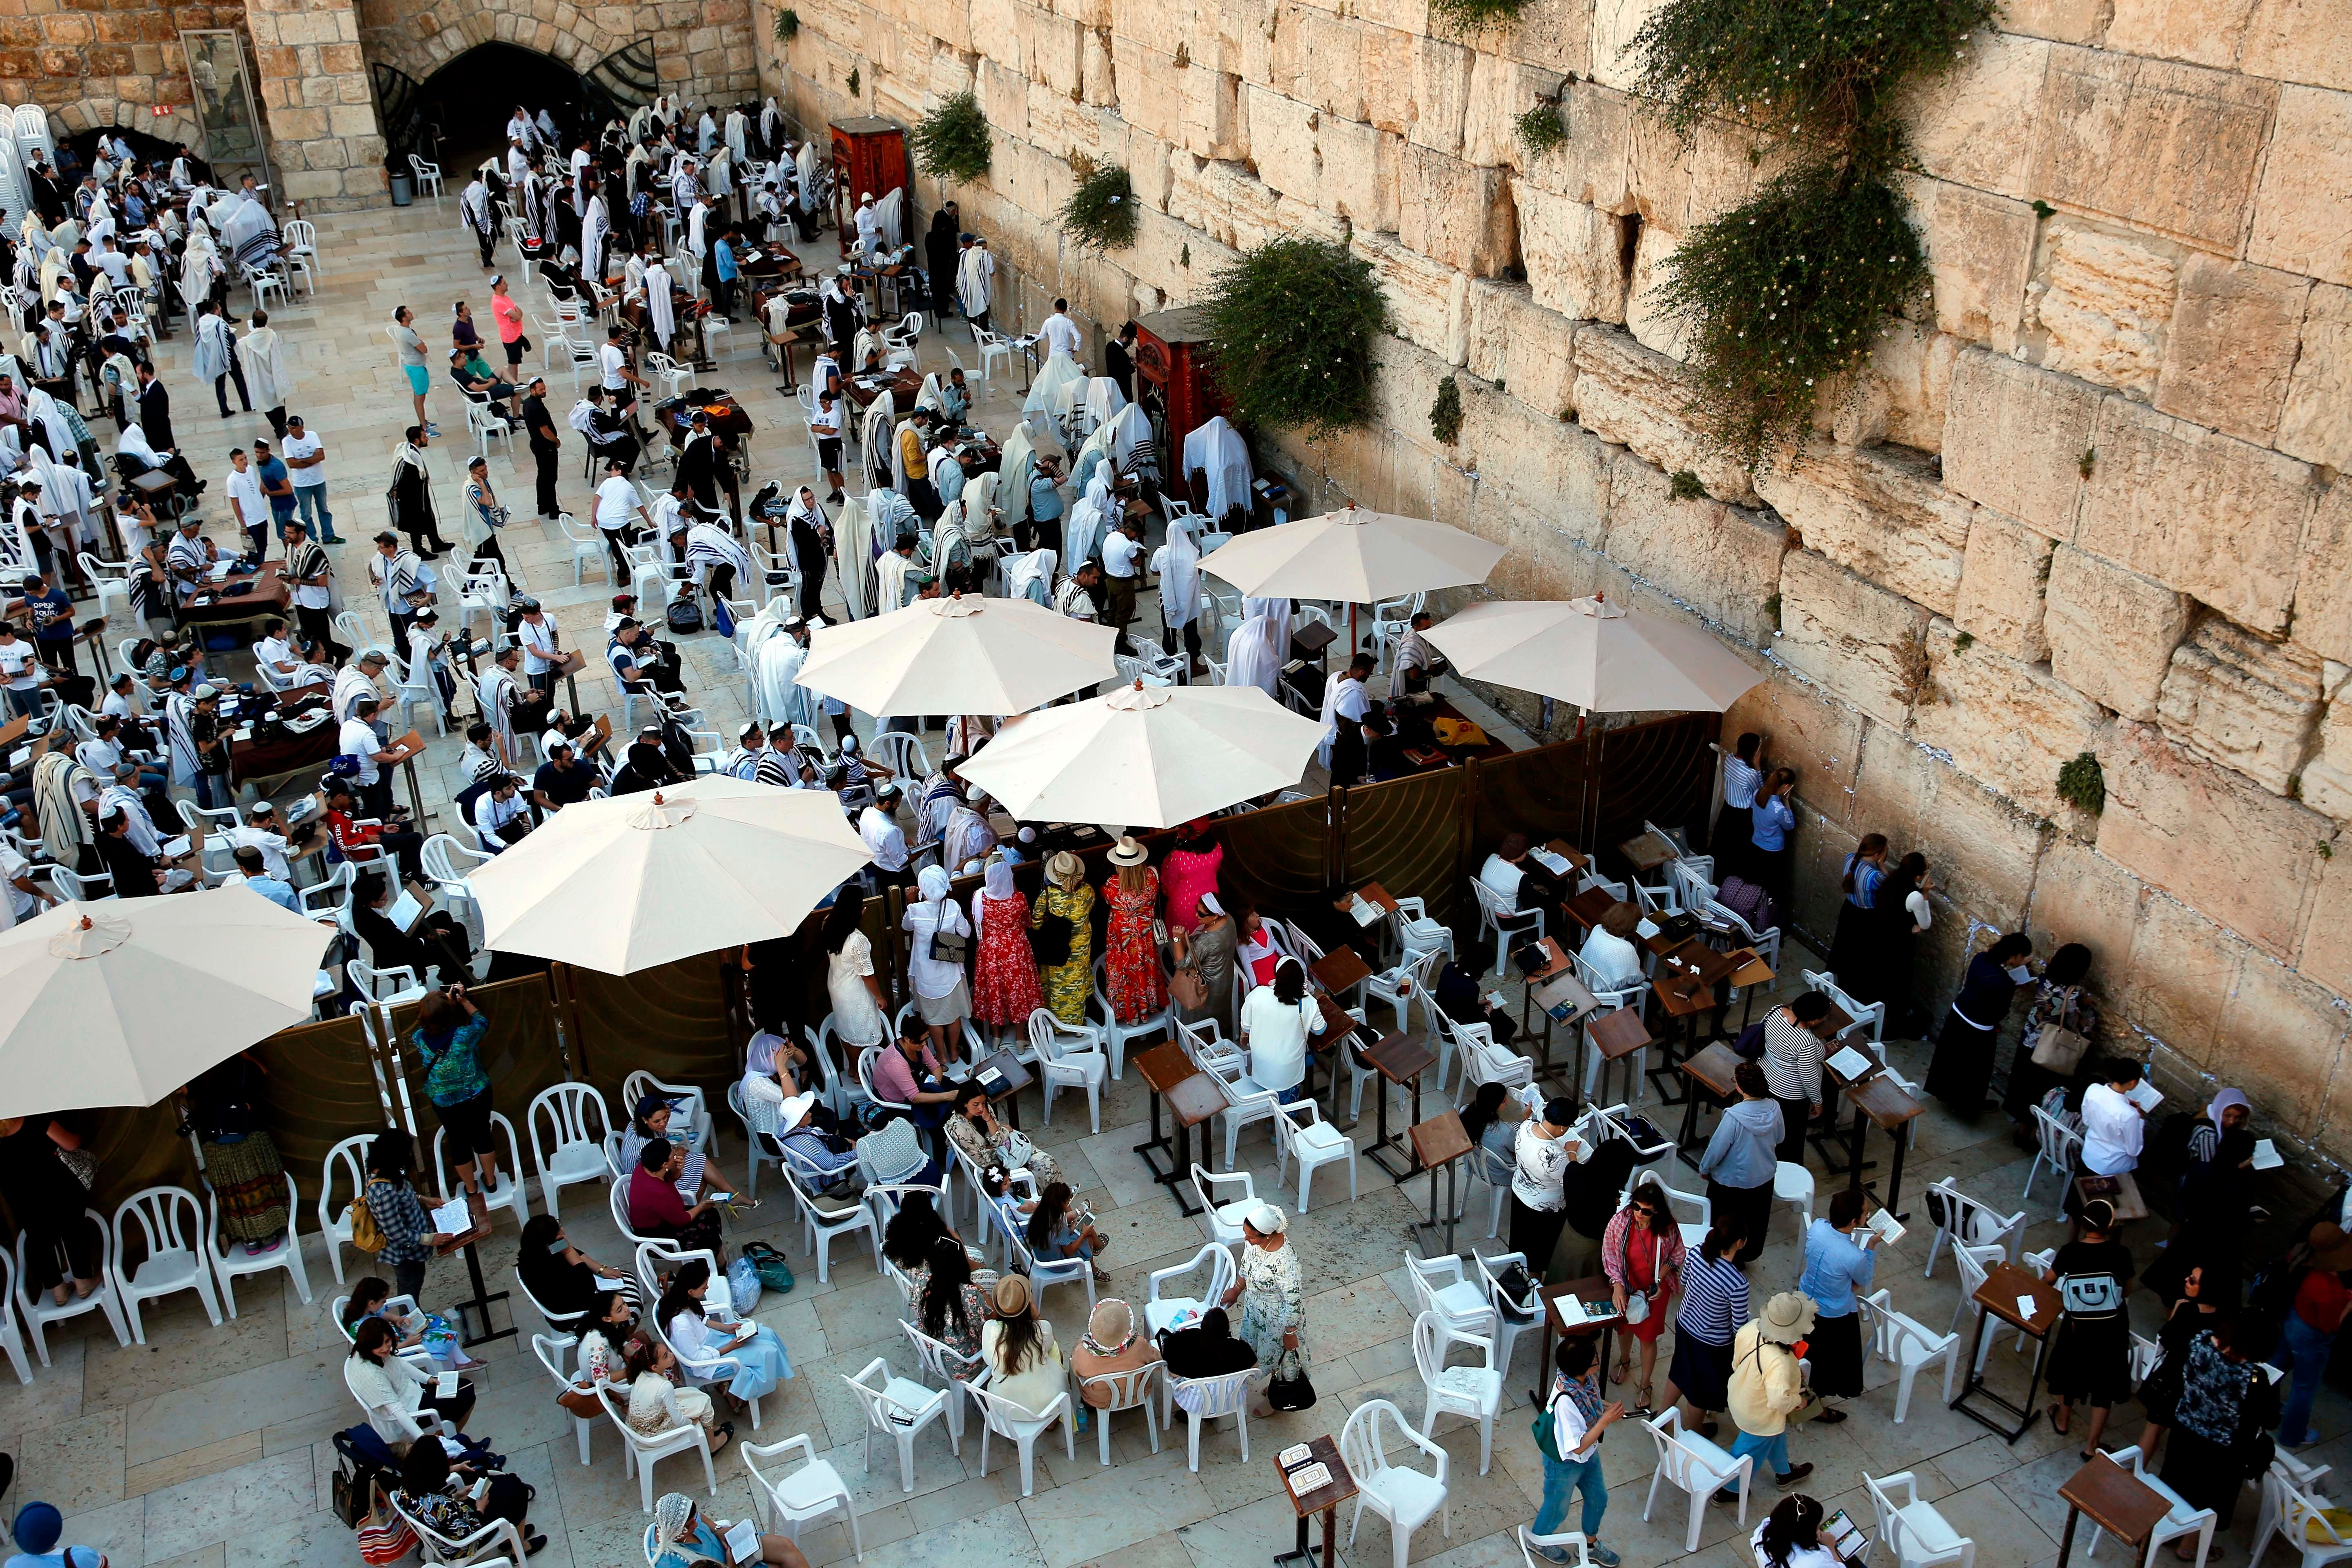 Jewish women pray at the women's section, on the right, which is separated from the men's section of the Western Wall.